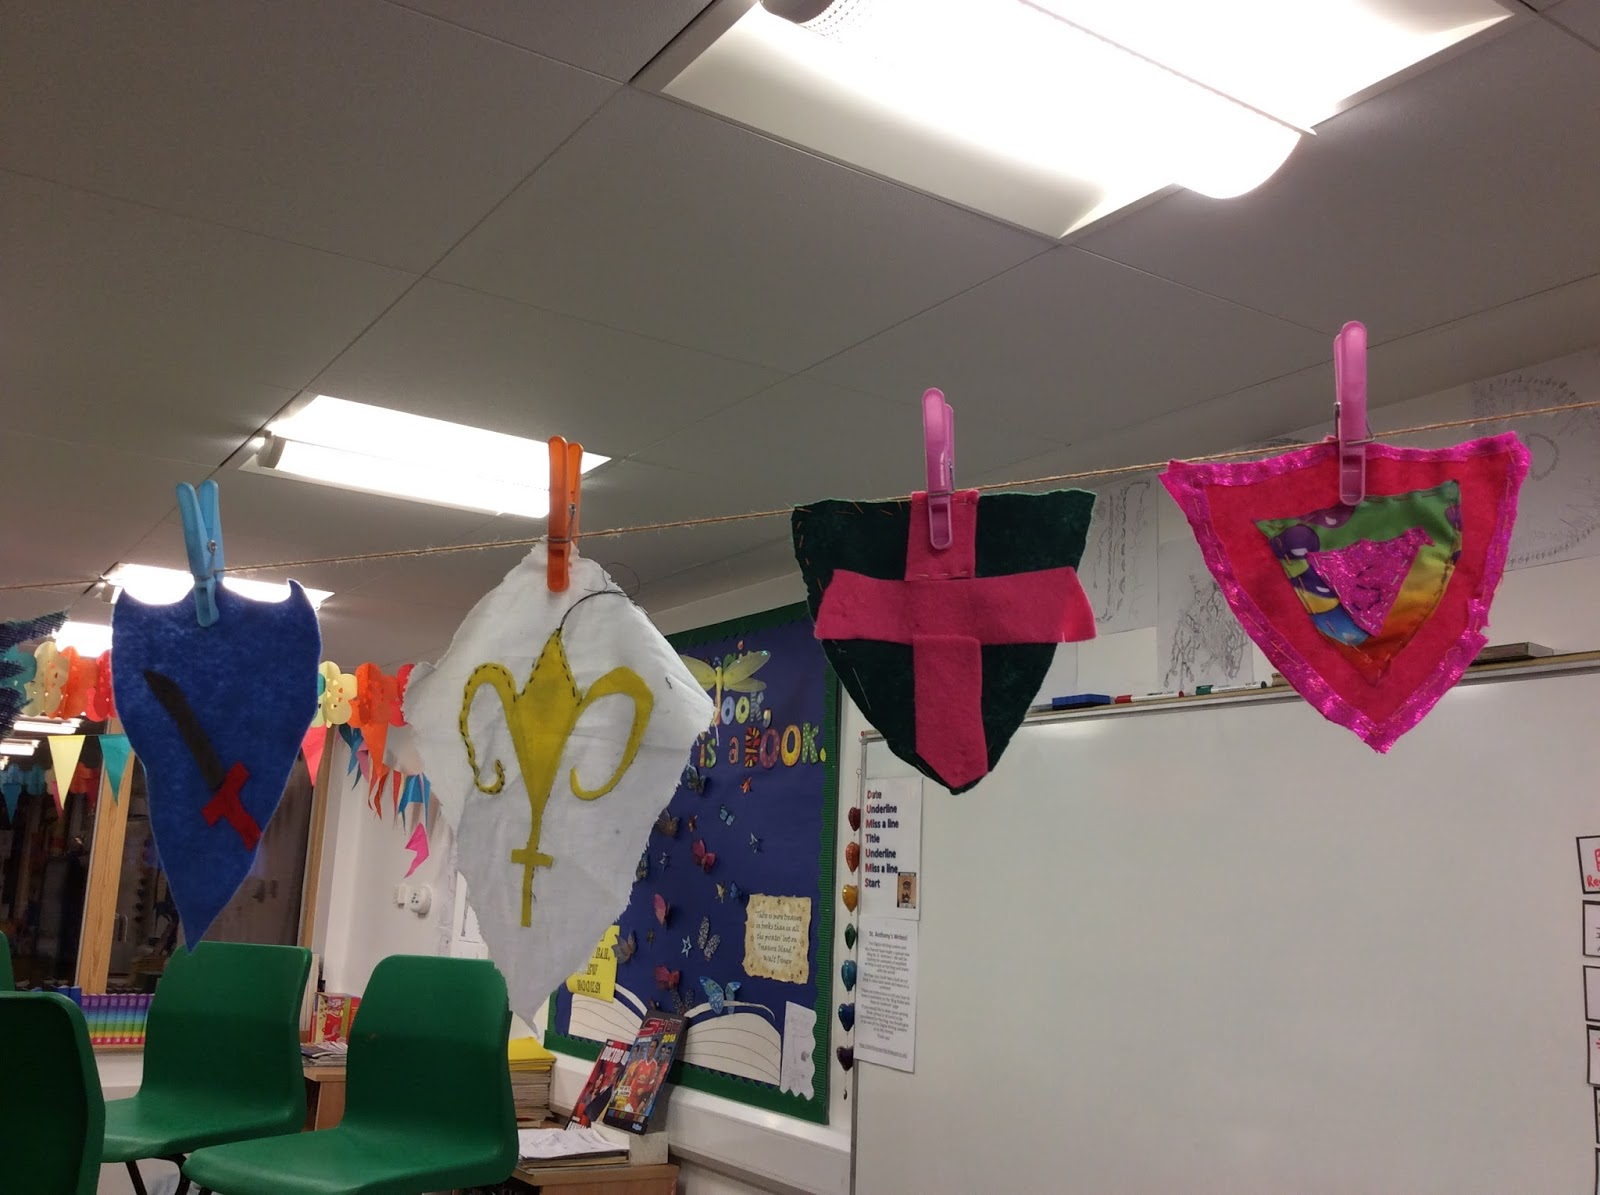 St. clare's class blog: our crest crazy classroom!